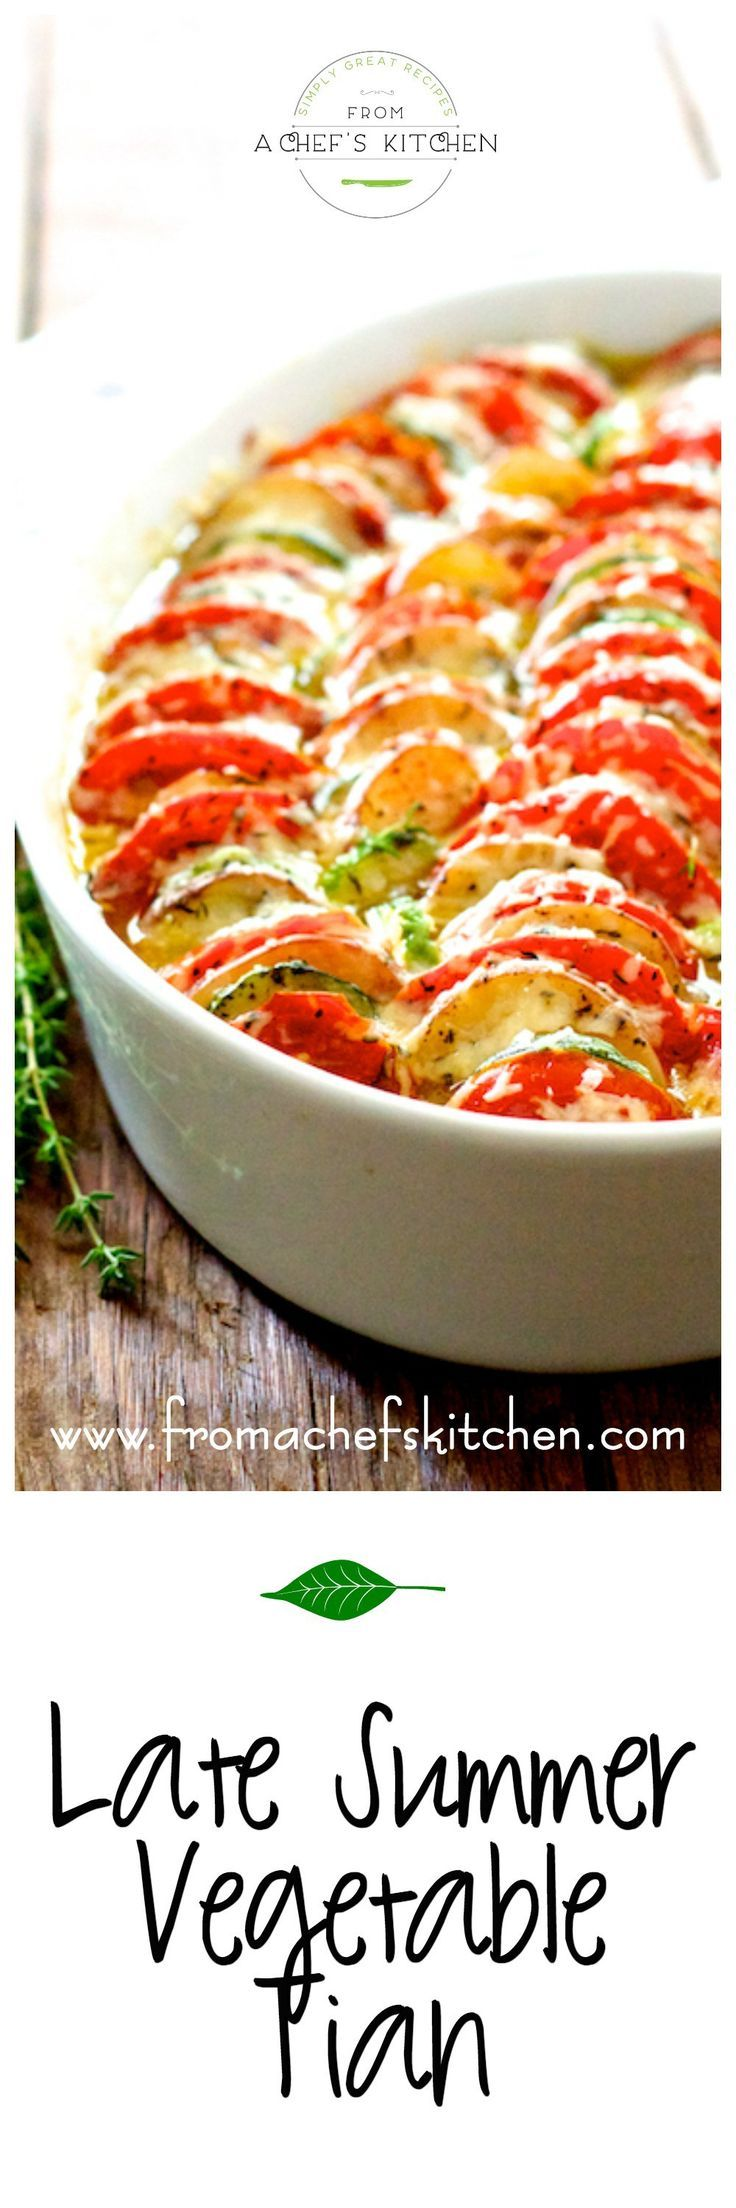 Late Summer Vegetable Tian is a beautiful Provencal-inspired side dish or vegetarian main dish.